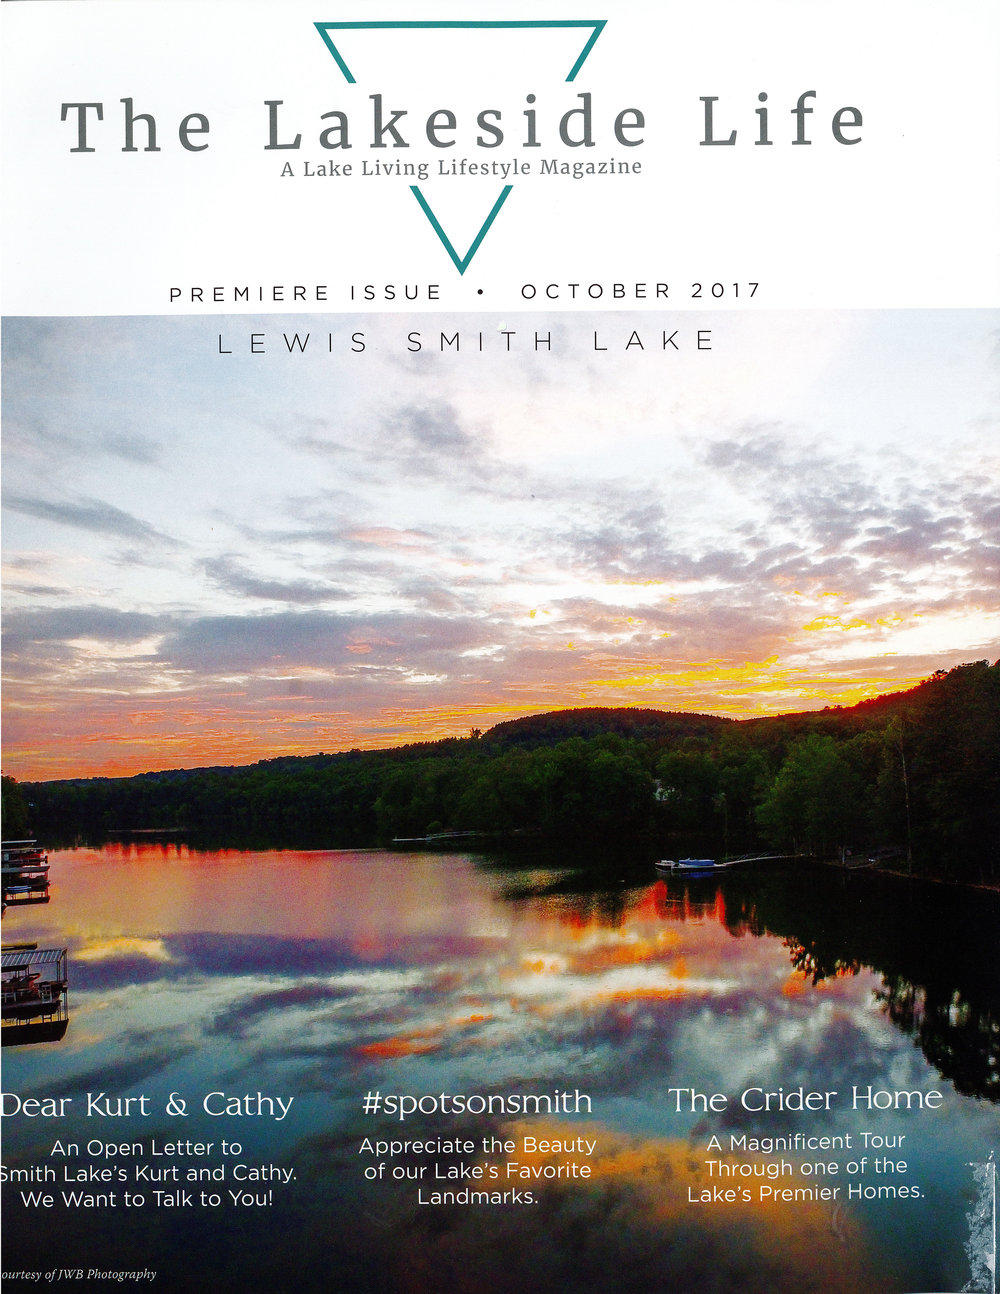 The Lakeside Life Magazine Cover Page for Studio C Crider Lake Home Renovation architecture